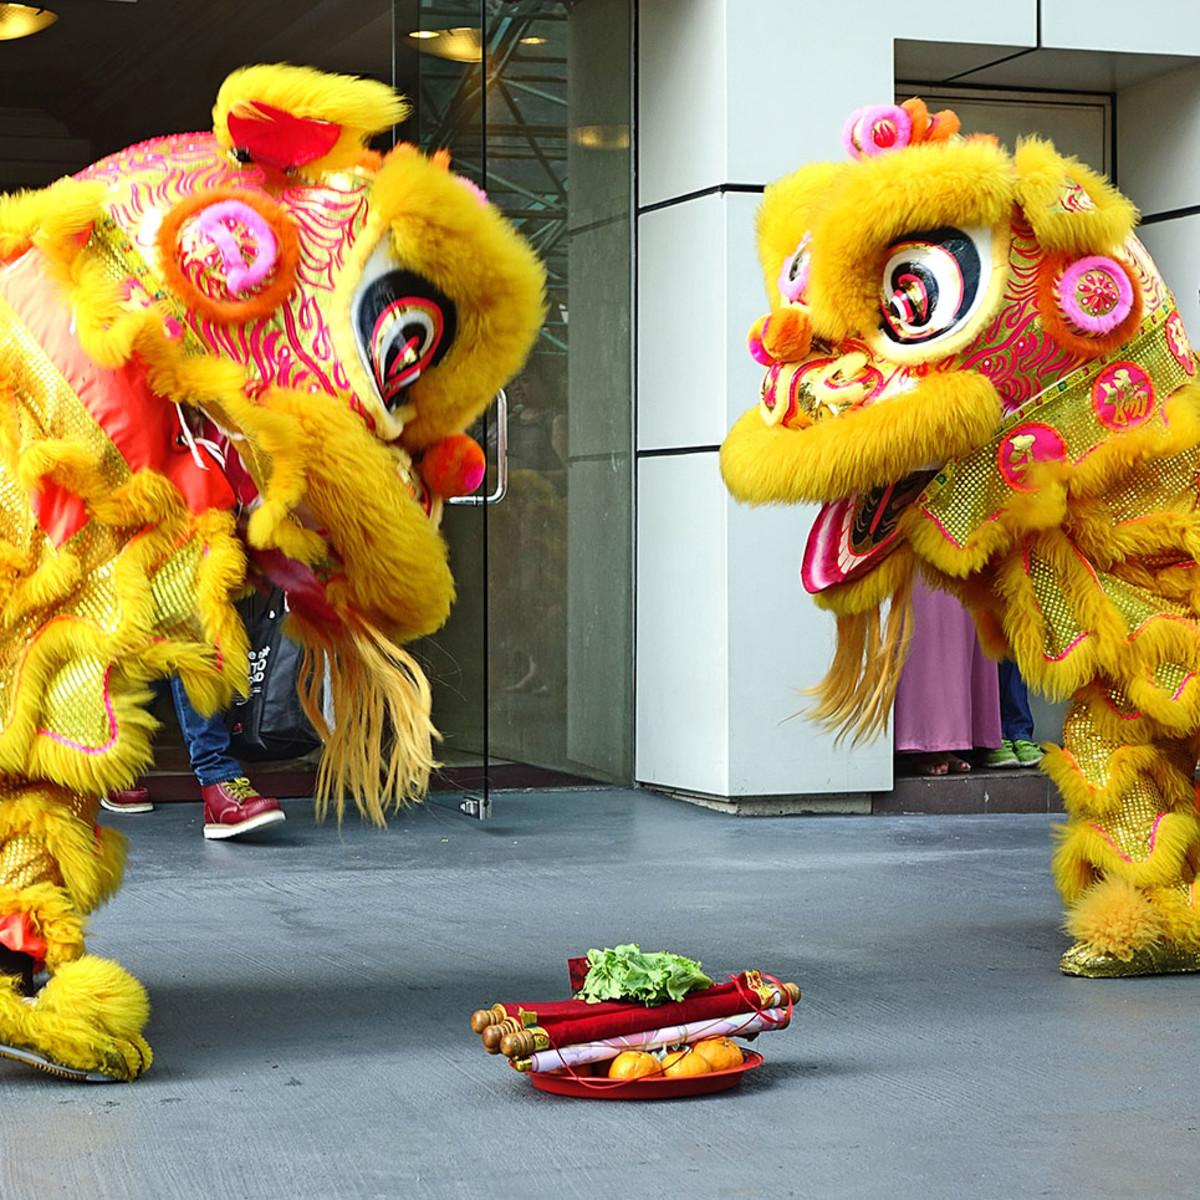 Festive Chinese lion dance during the New Year.